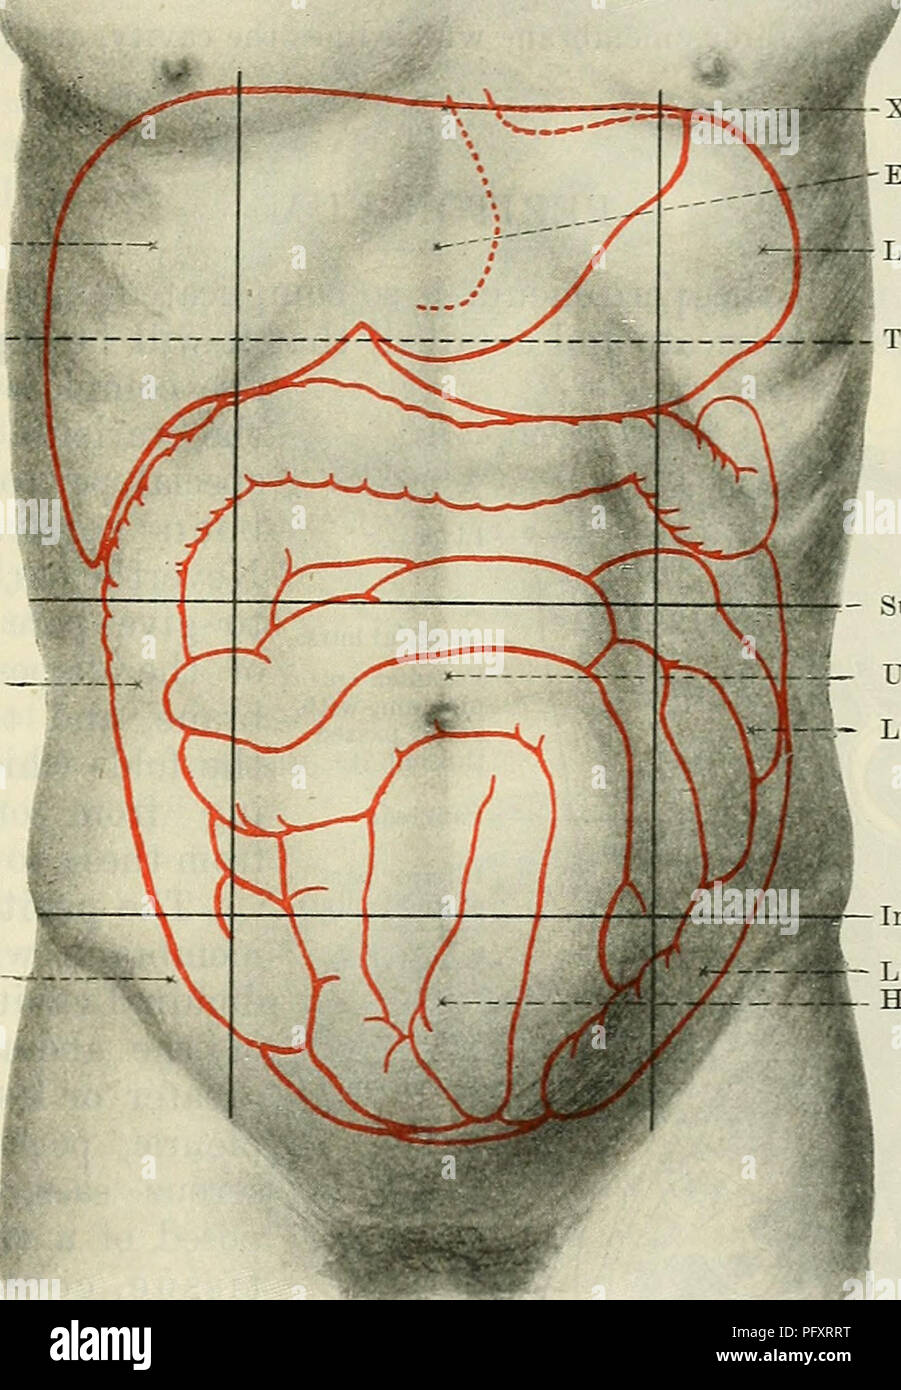 Cunninghams text book of anatomy anatomy the abdominal cavity cunninghams text book of anatomy anatomy the abdominal cavity 1159 perpendicular planes each of these is subdivided into three parts a central and ccuart Gallery